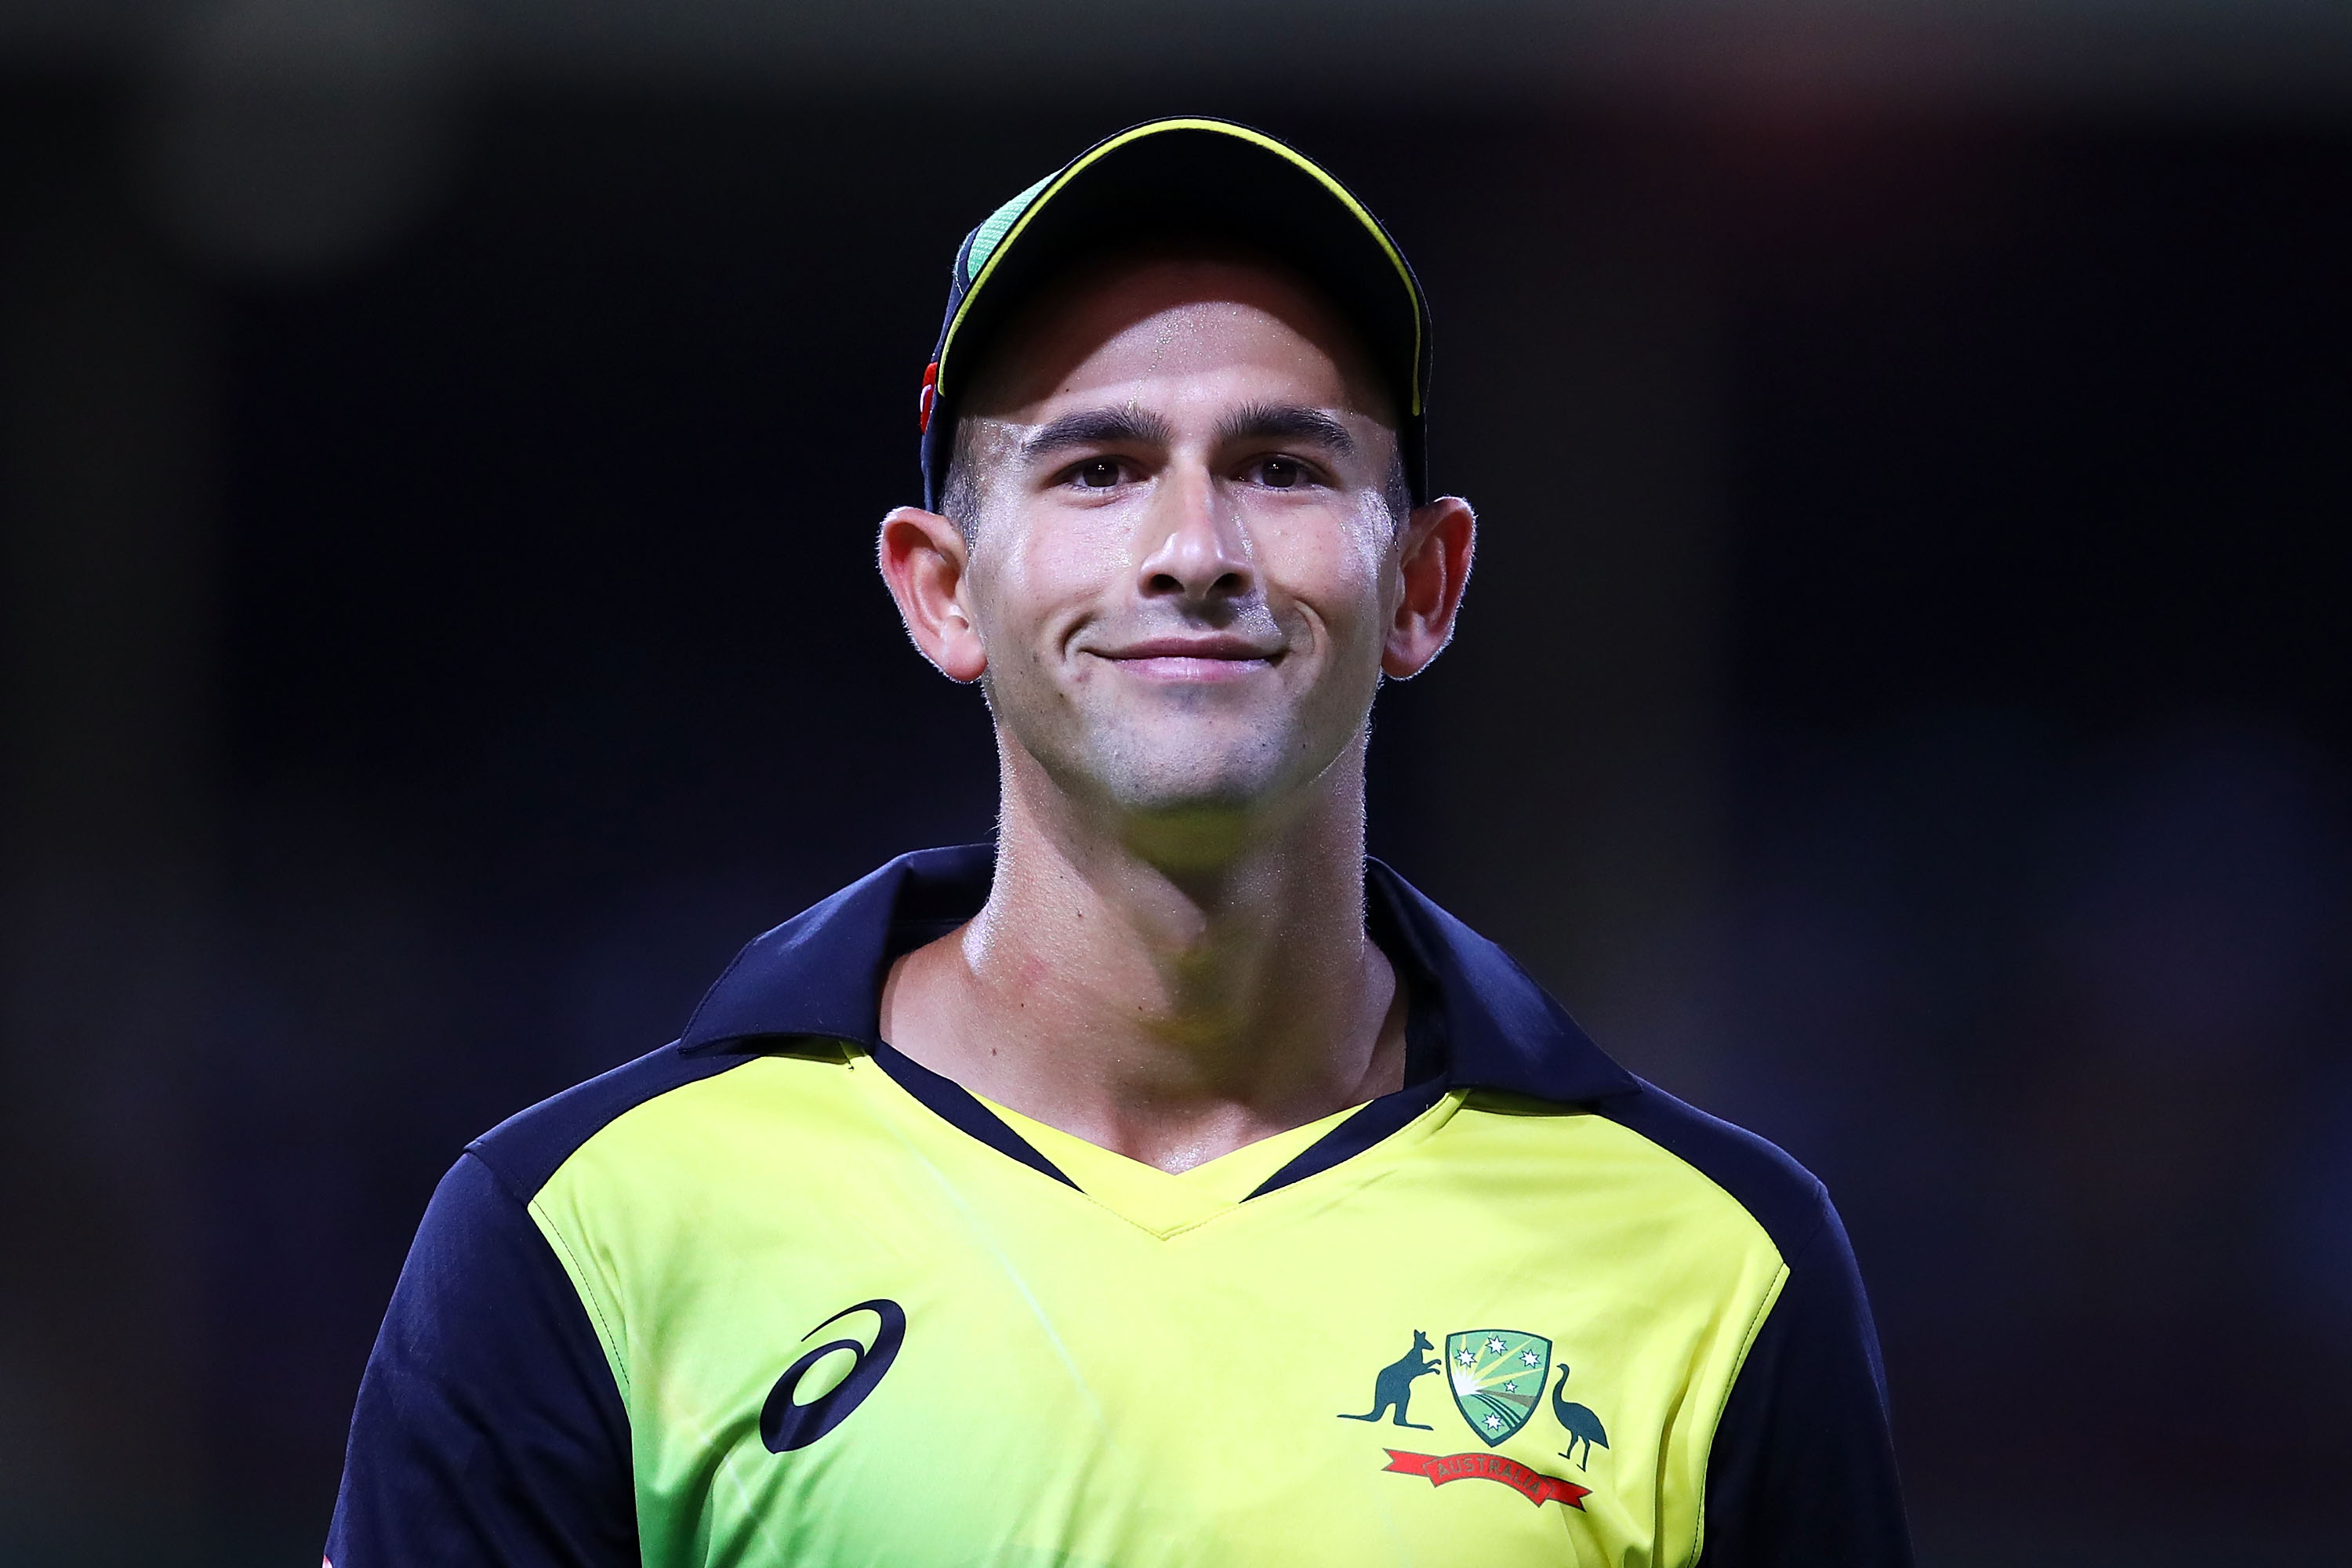 Ashton Agar smiling